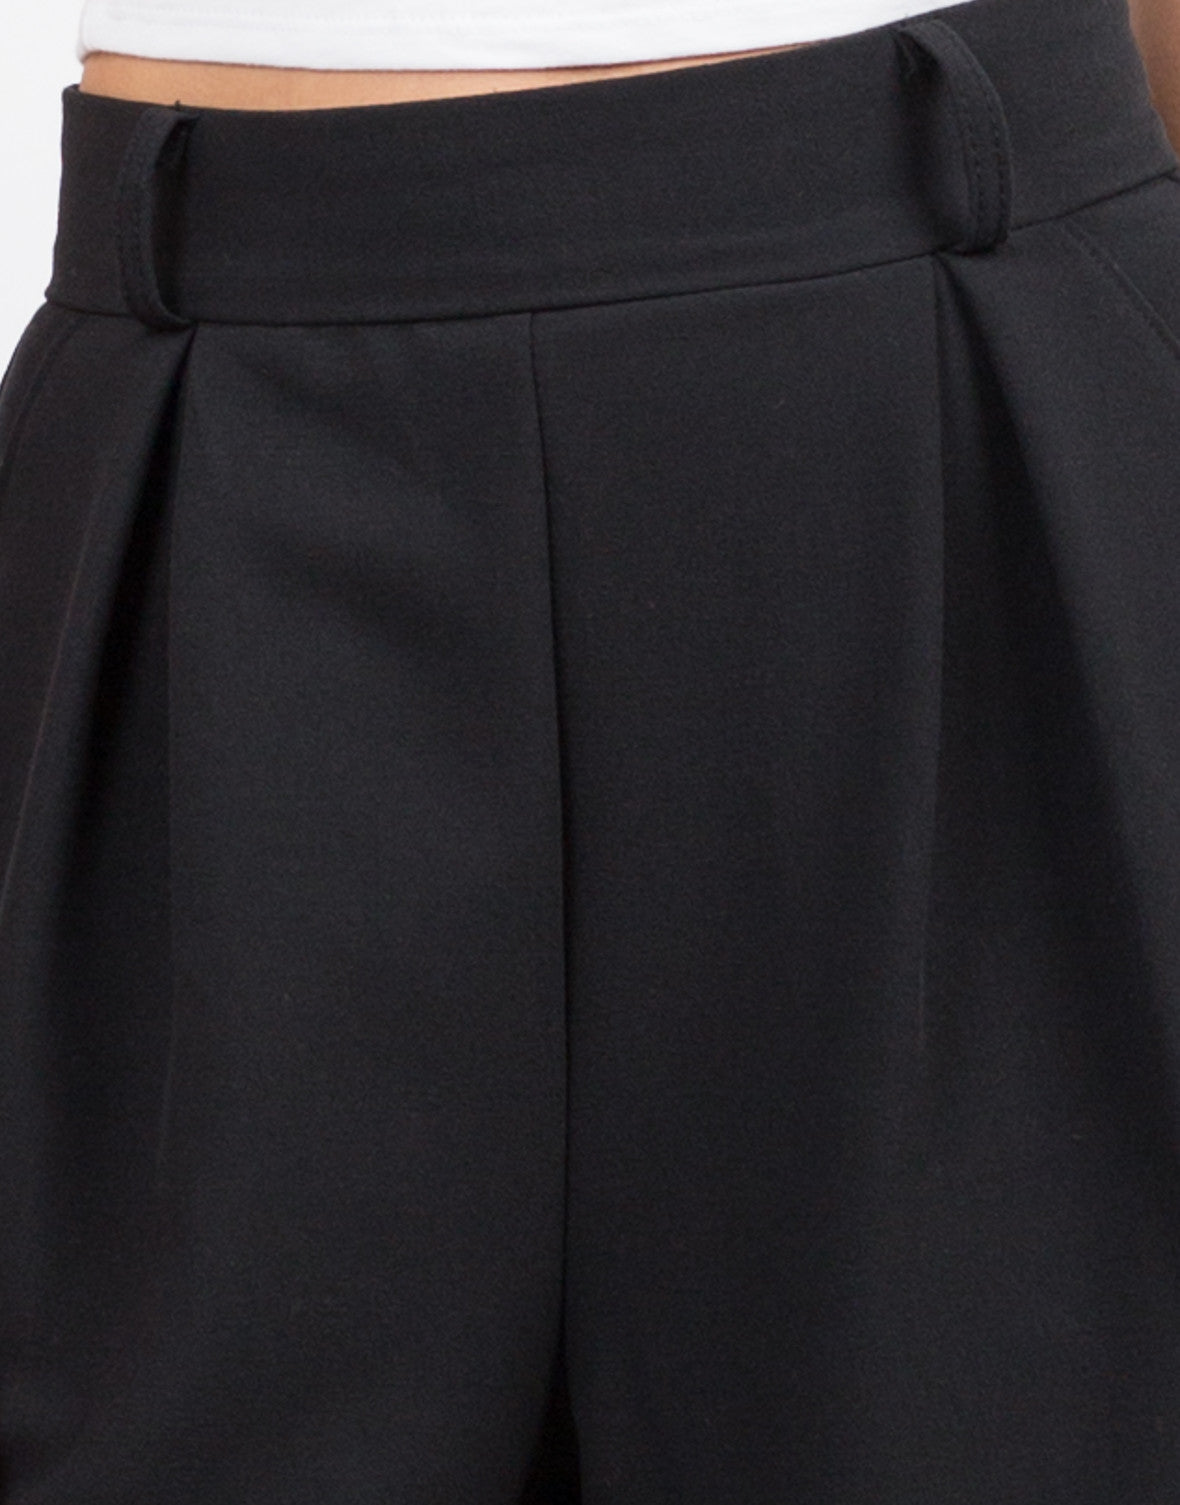 Detail of Wide Leg Culotte Pants